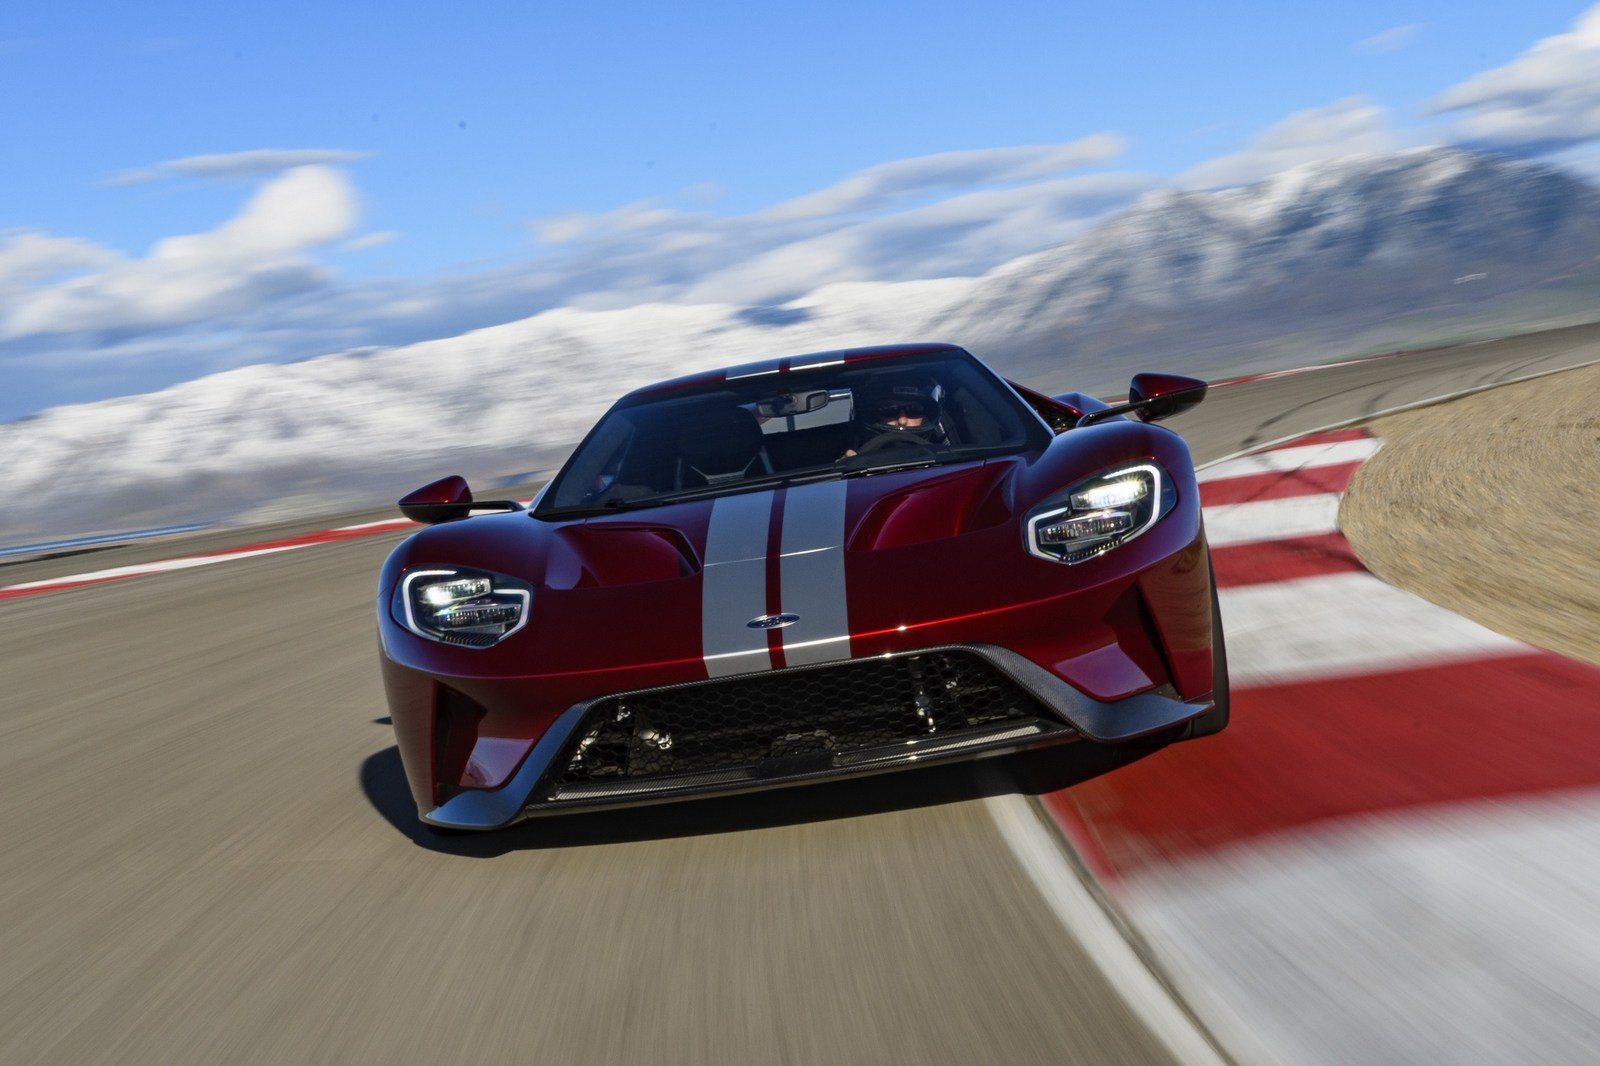 Ford ford gt images : Ford GT Production Hits A Snag, Deliveries To Be Delayed | Carscoops